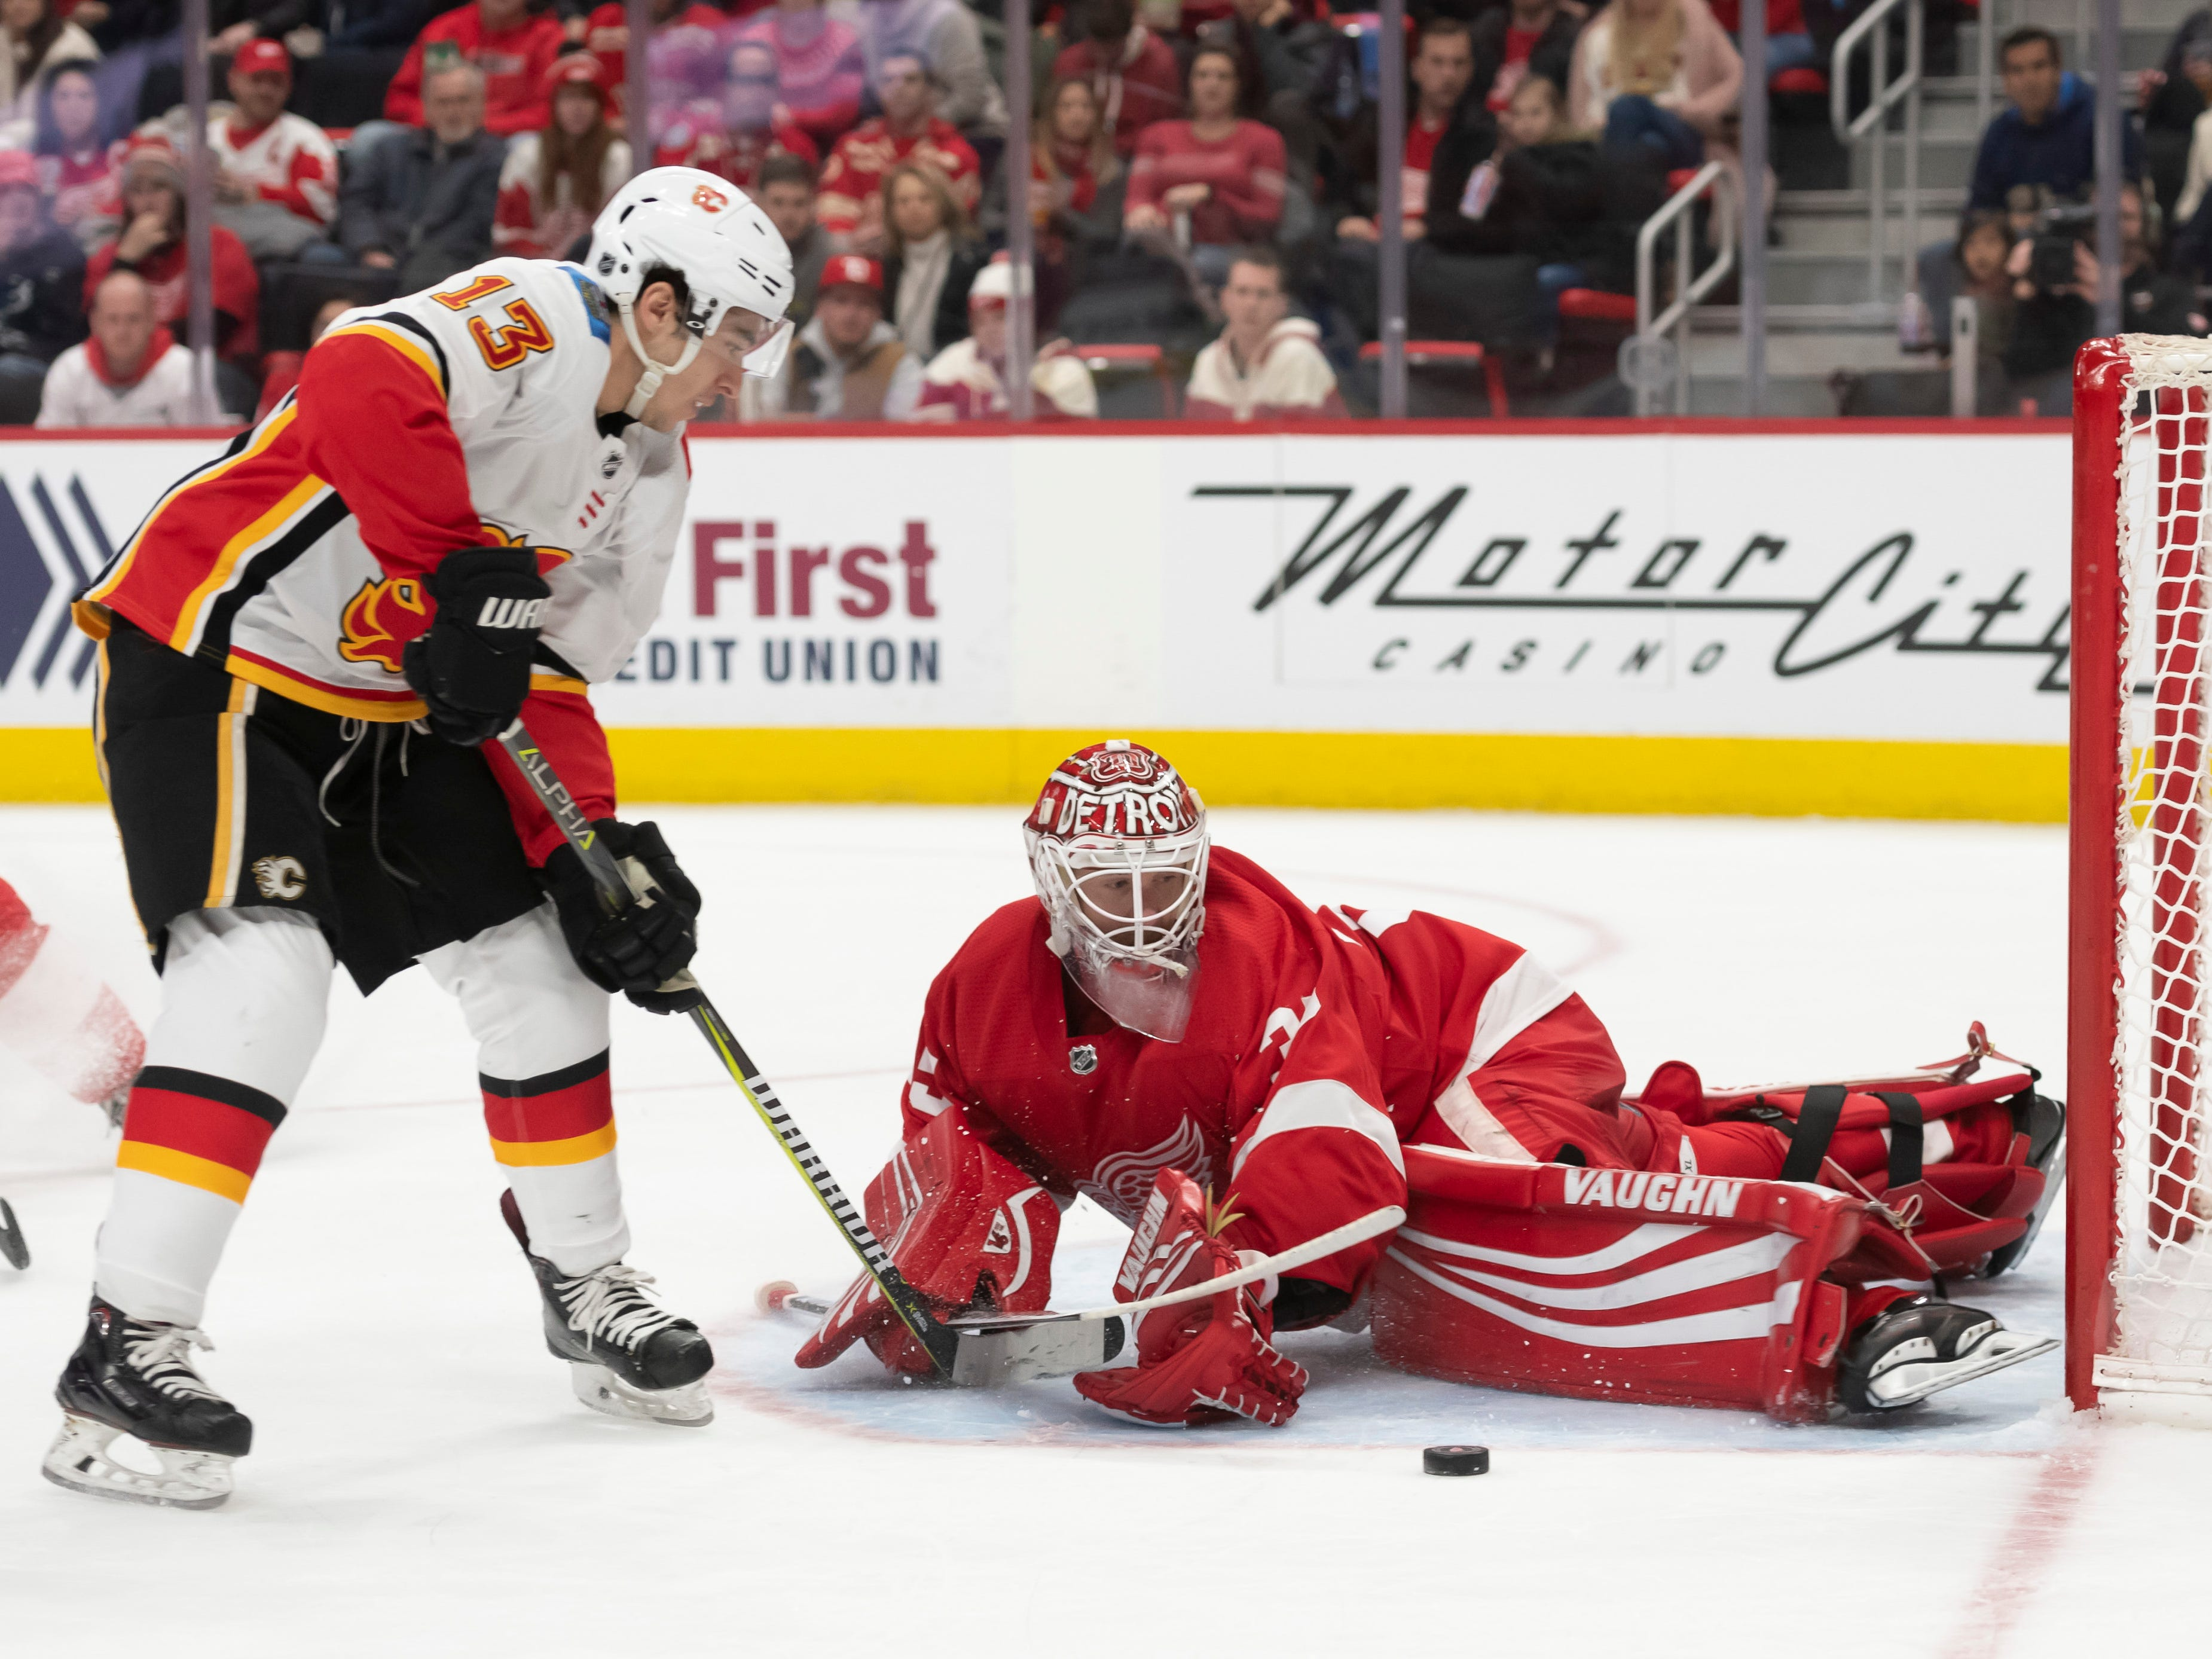 Calgary left wing Johnny Gaudreau gets a breakaway shot stopped by Detroit goaltender Jimmy Howard in the second period.